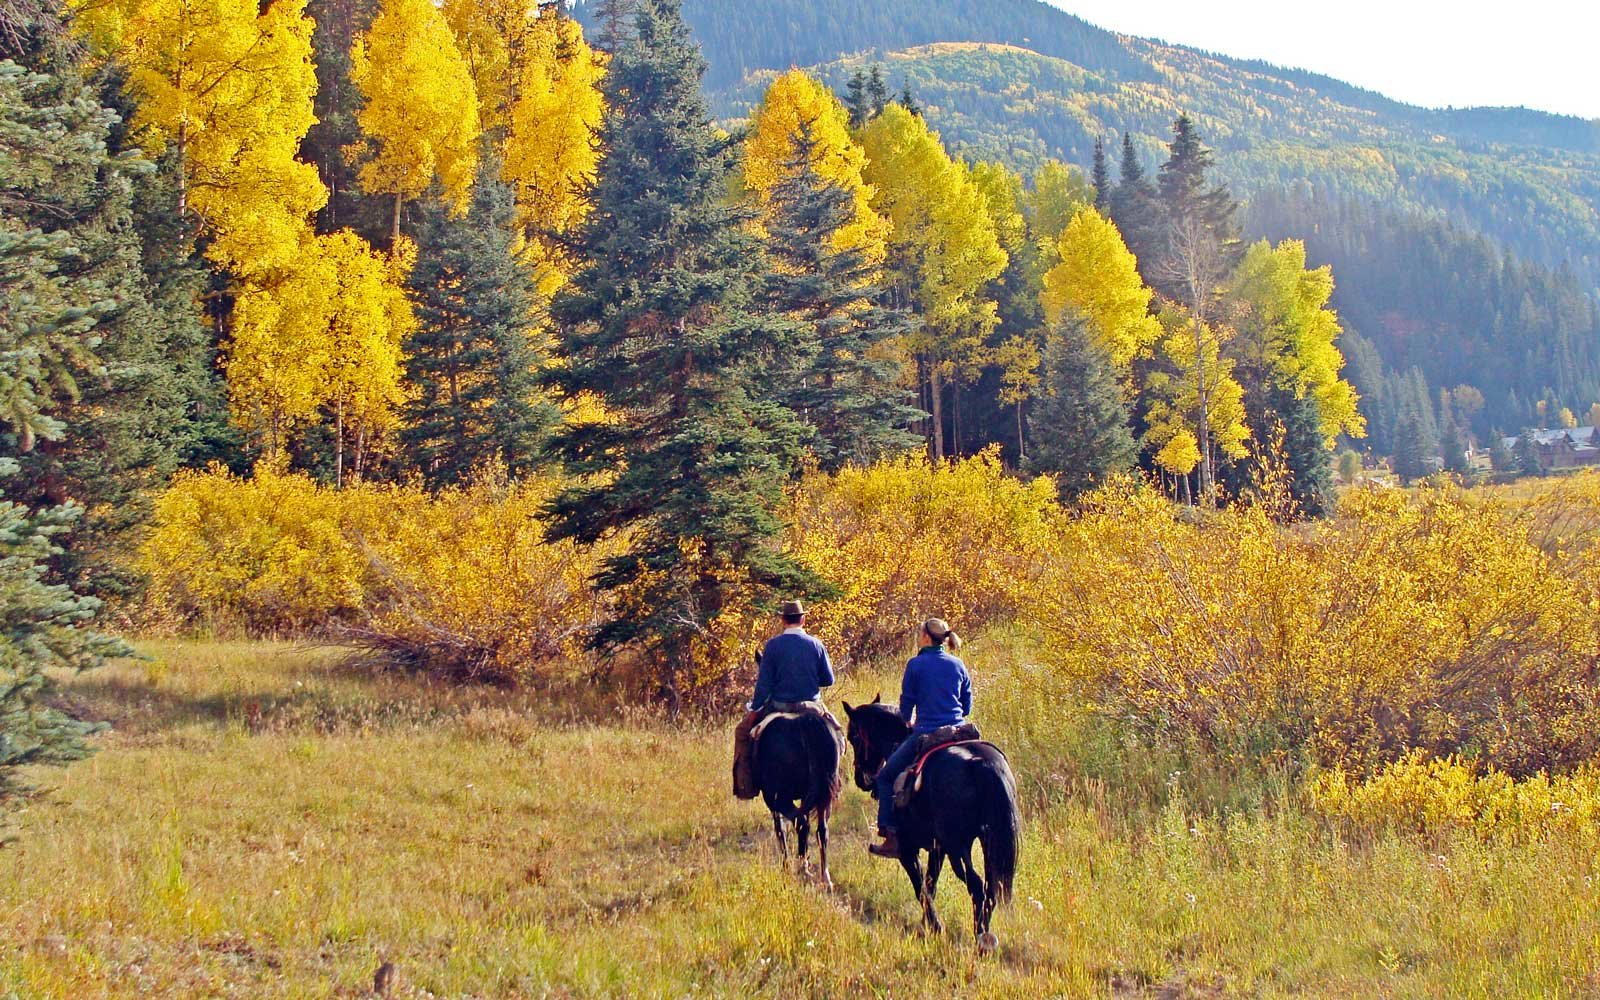 Guests of Dunton Hot Springs riding horses near the property